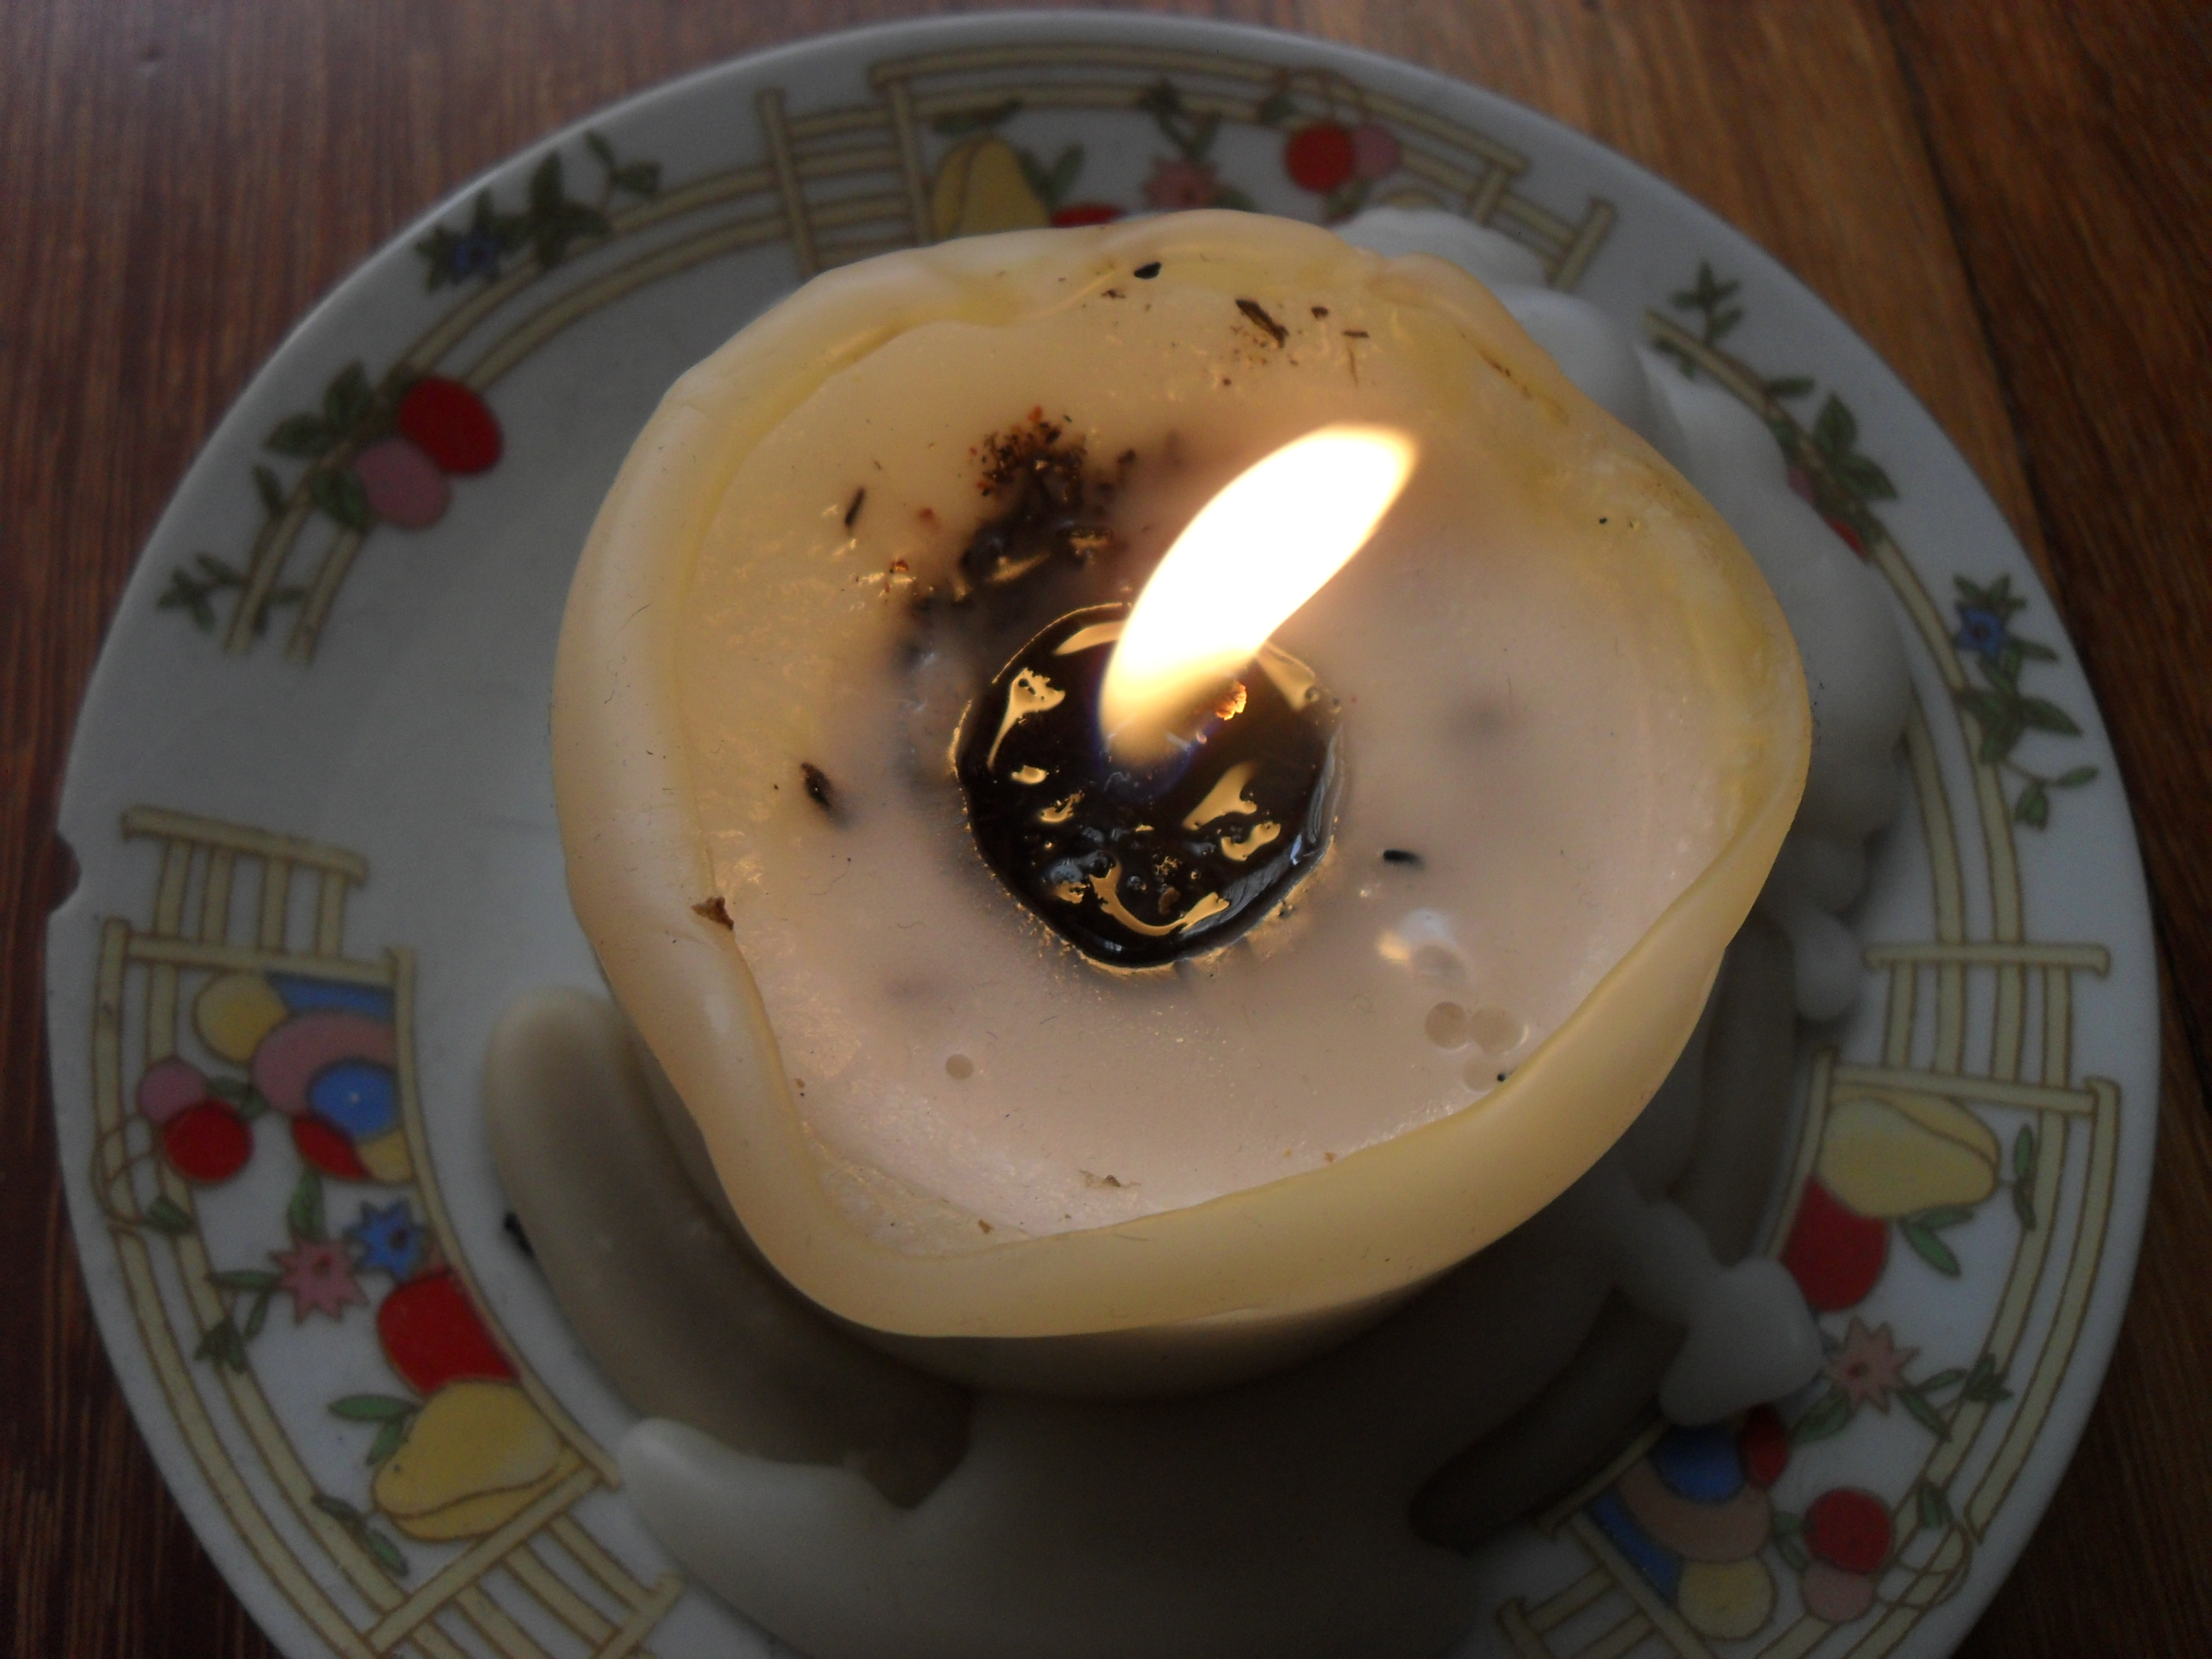 Spicing Up Boring Candles